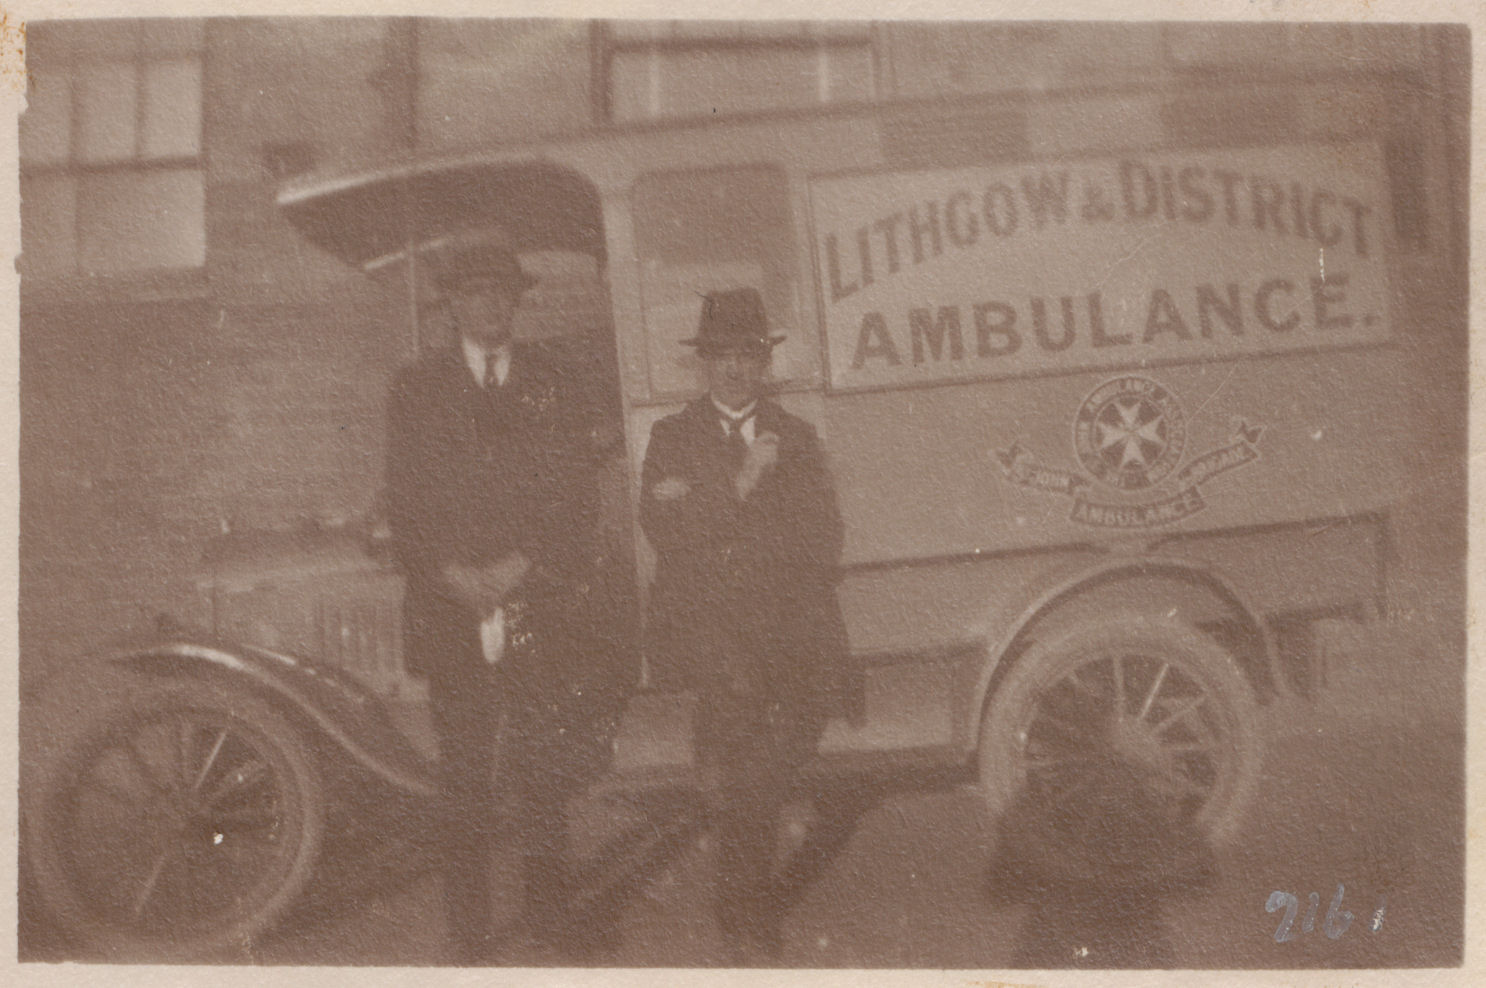 LDHS 0135 Lithgow and District Ambulance